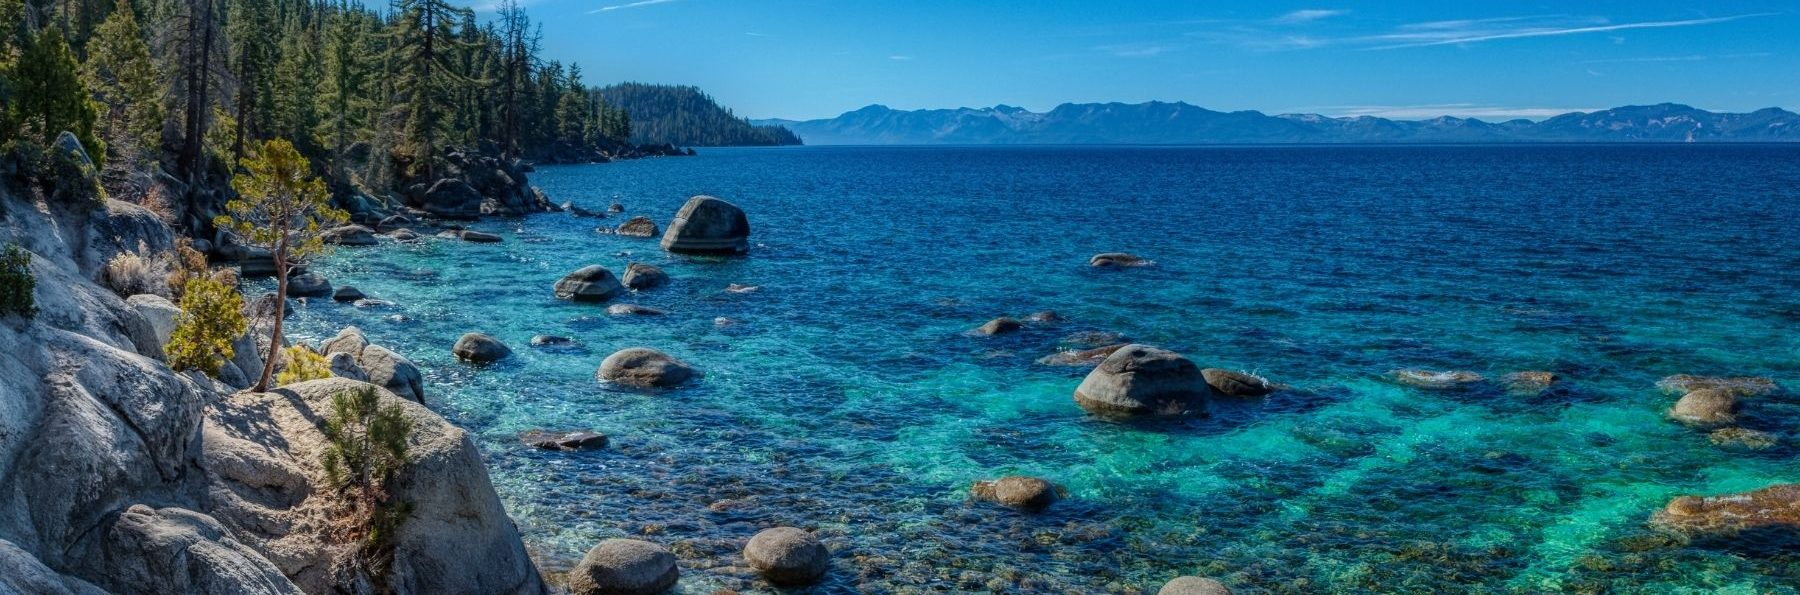 tahoe in the daylight